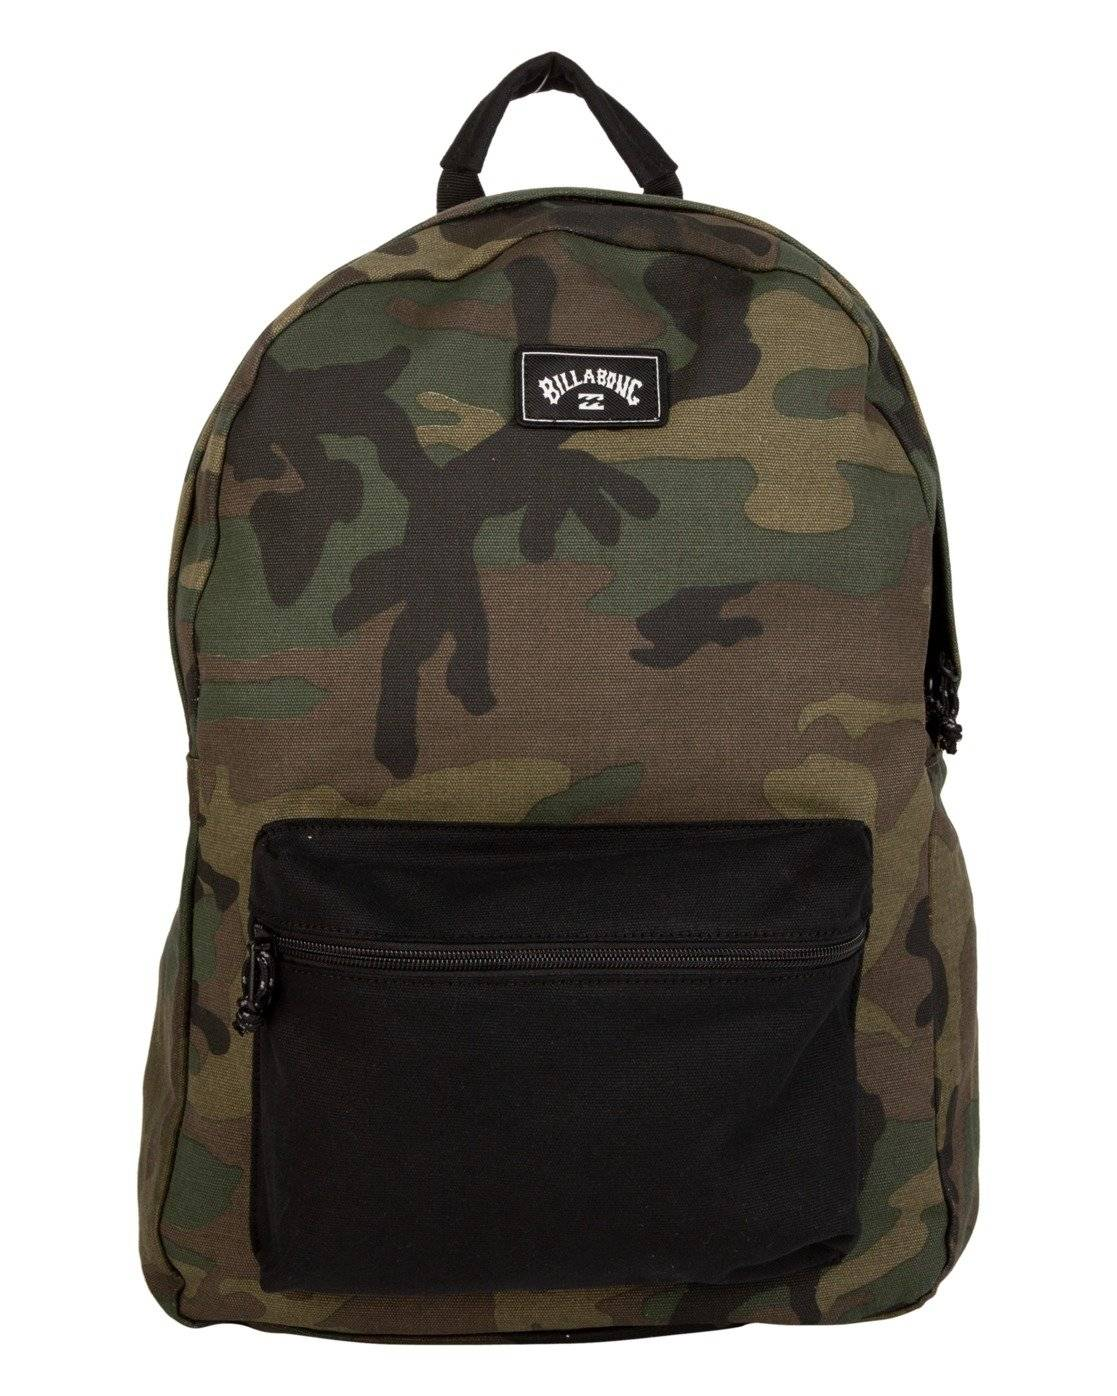 Billabong All Day Backpack  - Black - Size: One Size